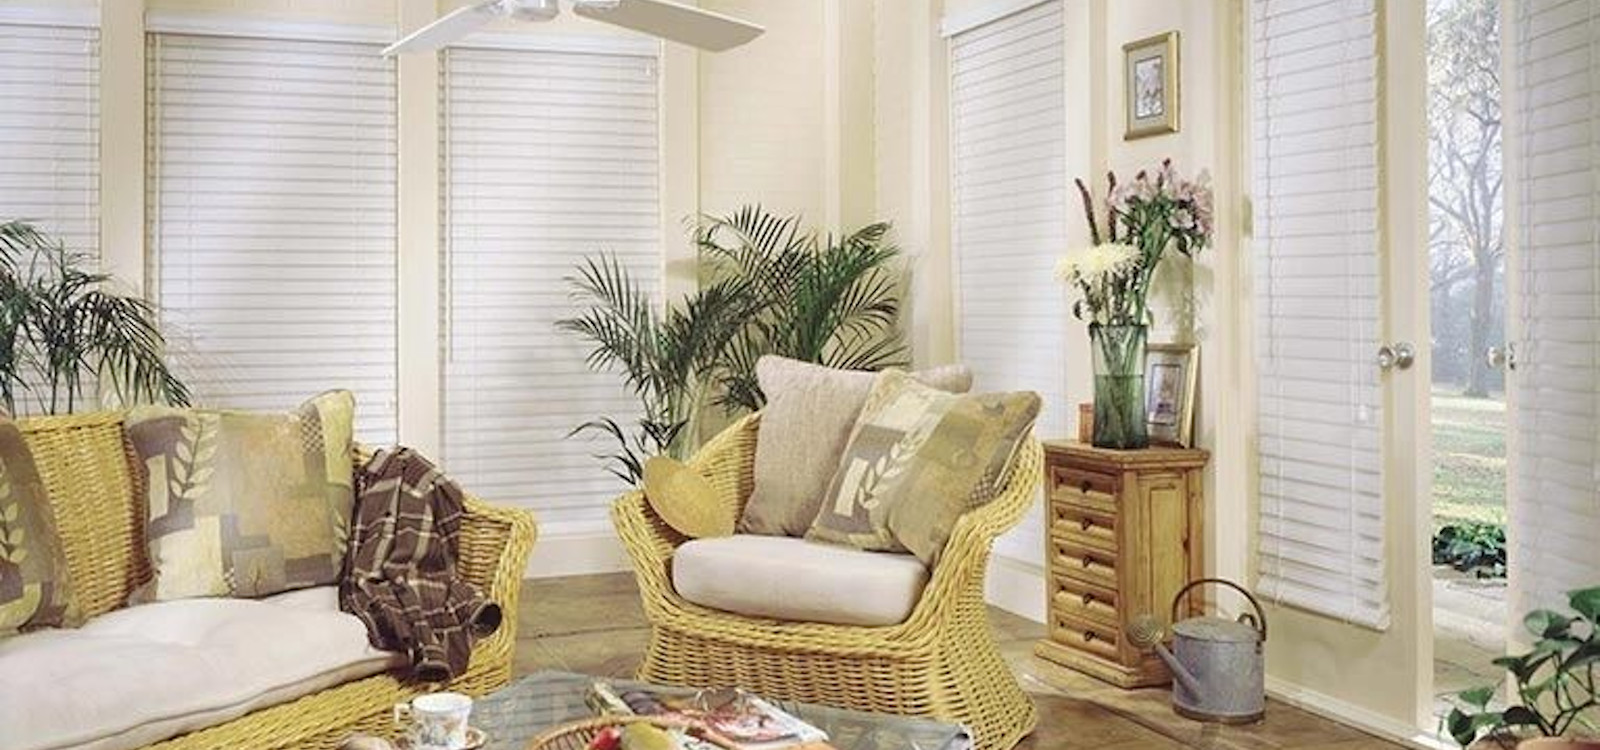 Century Real Wood Blinds Z Blinds Company Fresno